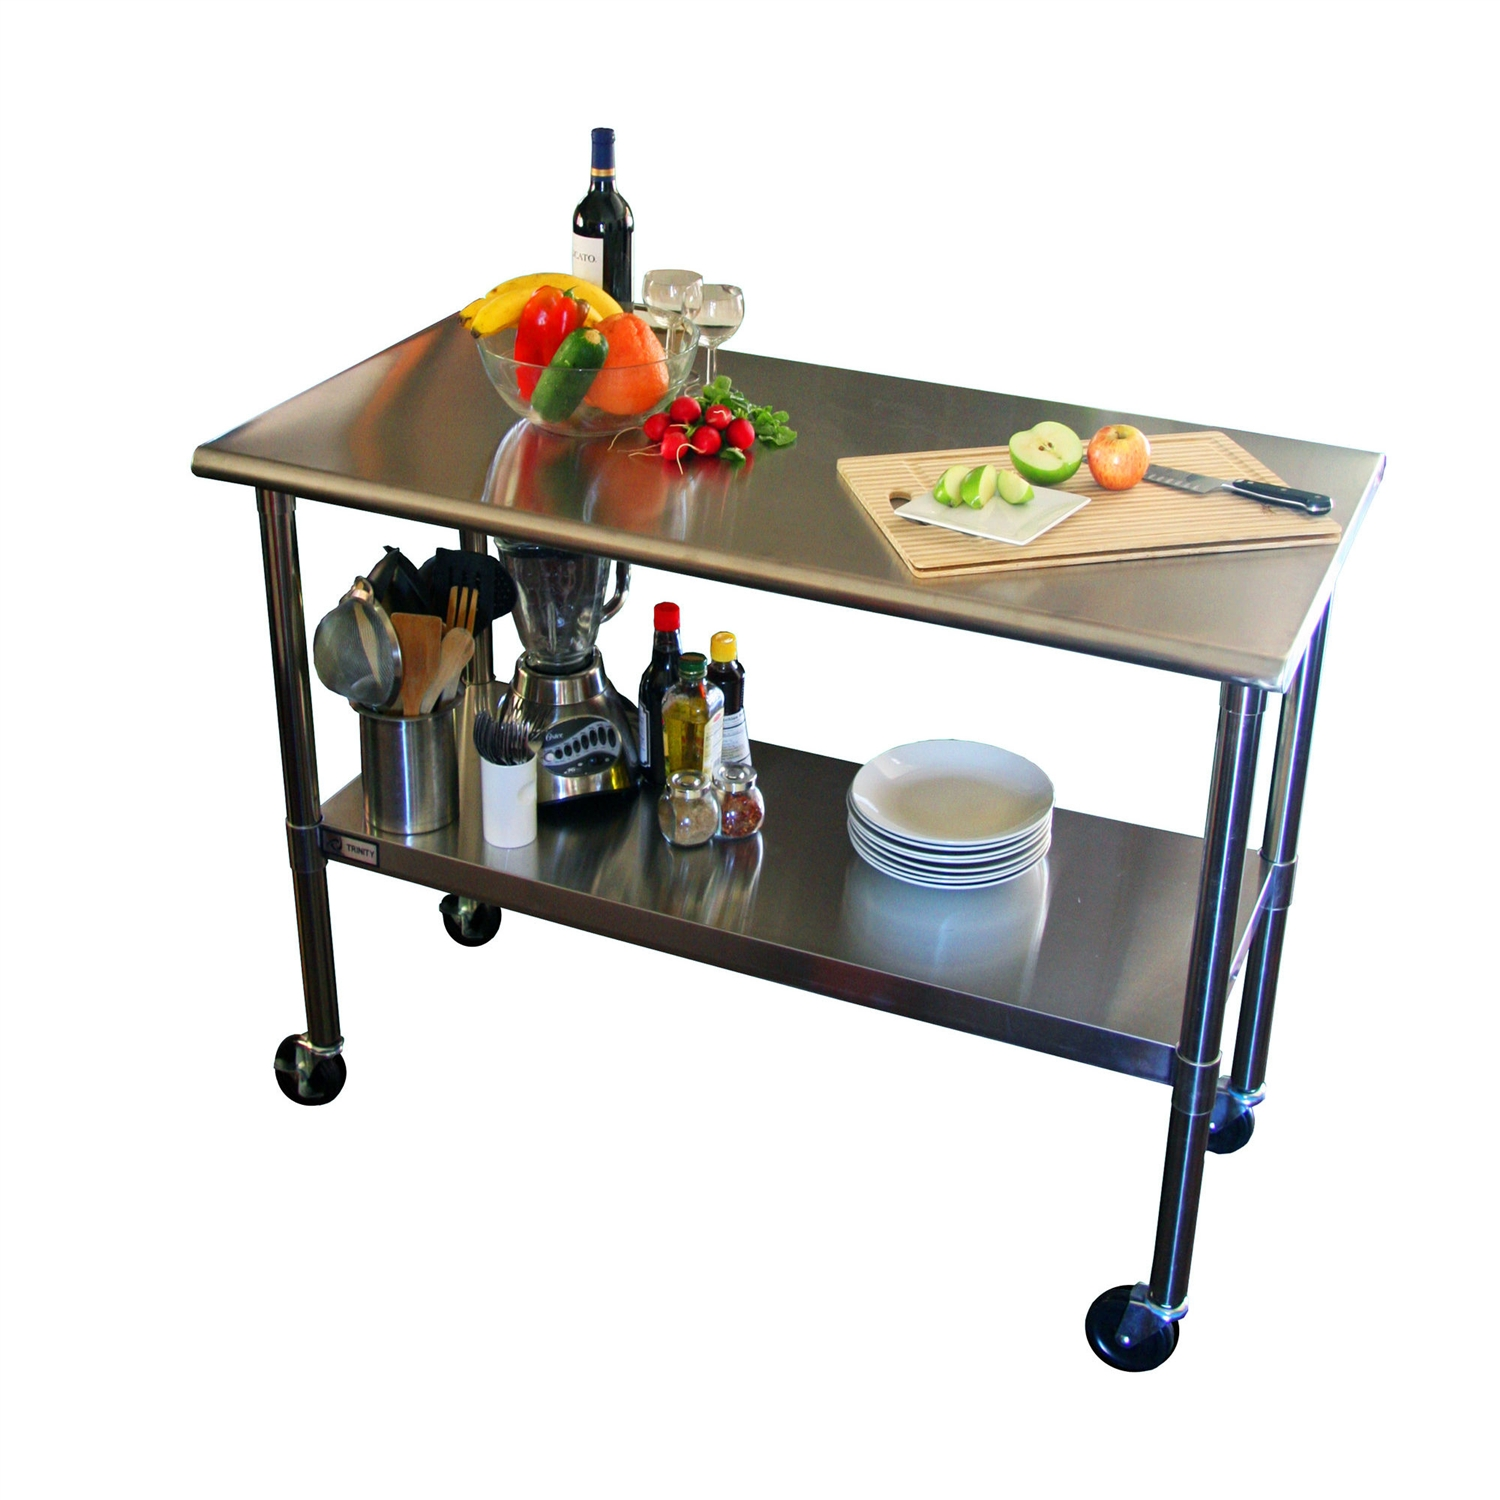 tep kitchen prep table 2ft 4ft Stainless Steel Top Kitchen Prep Table with Locking Casters Wheels